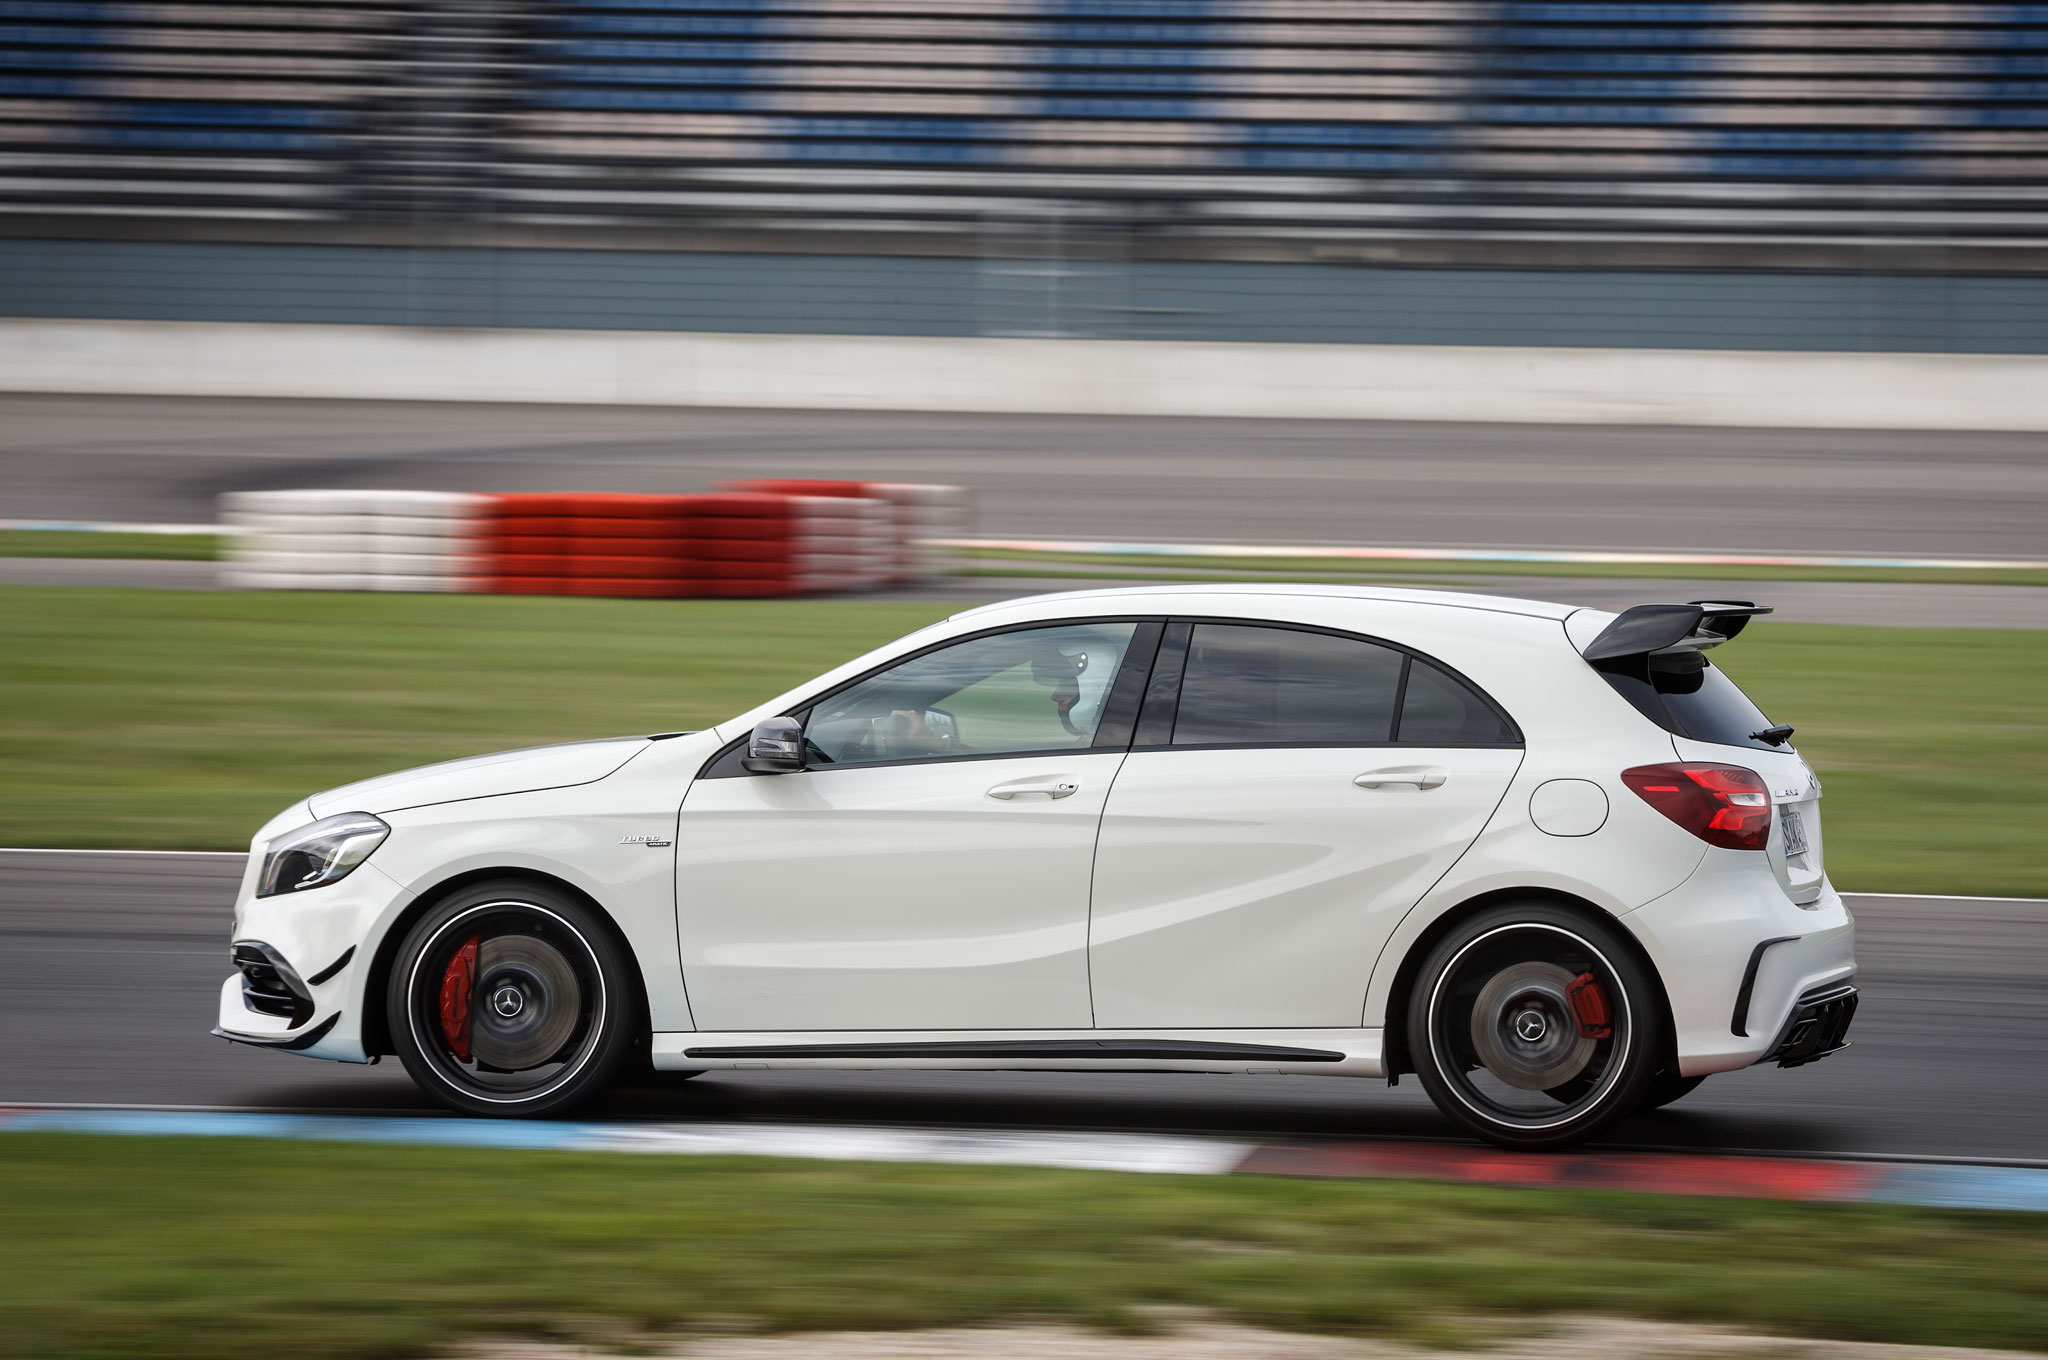 https://st.automobilemag.com/uploads/sites/11/2015/09/2016-Mercedes-AMG-A45-4Matic-side-profile-in-motion-01.jpg